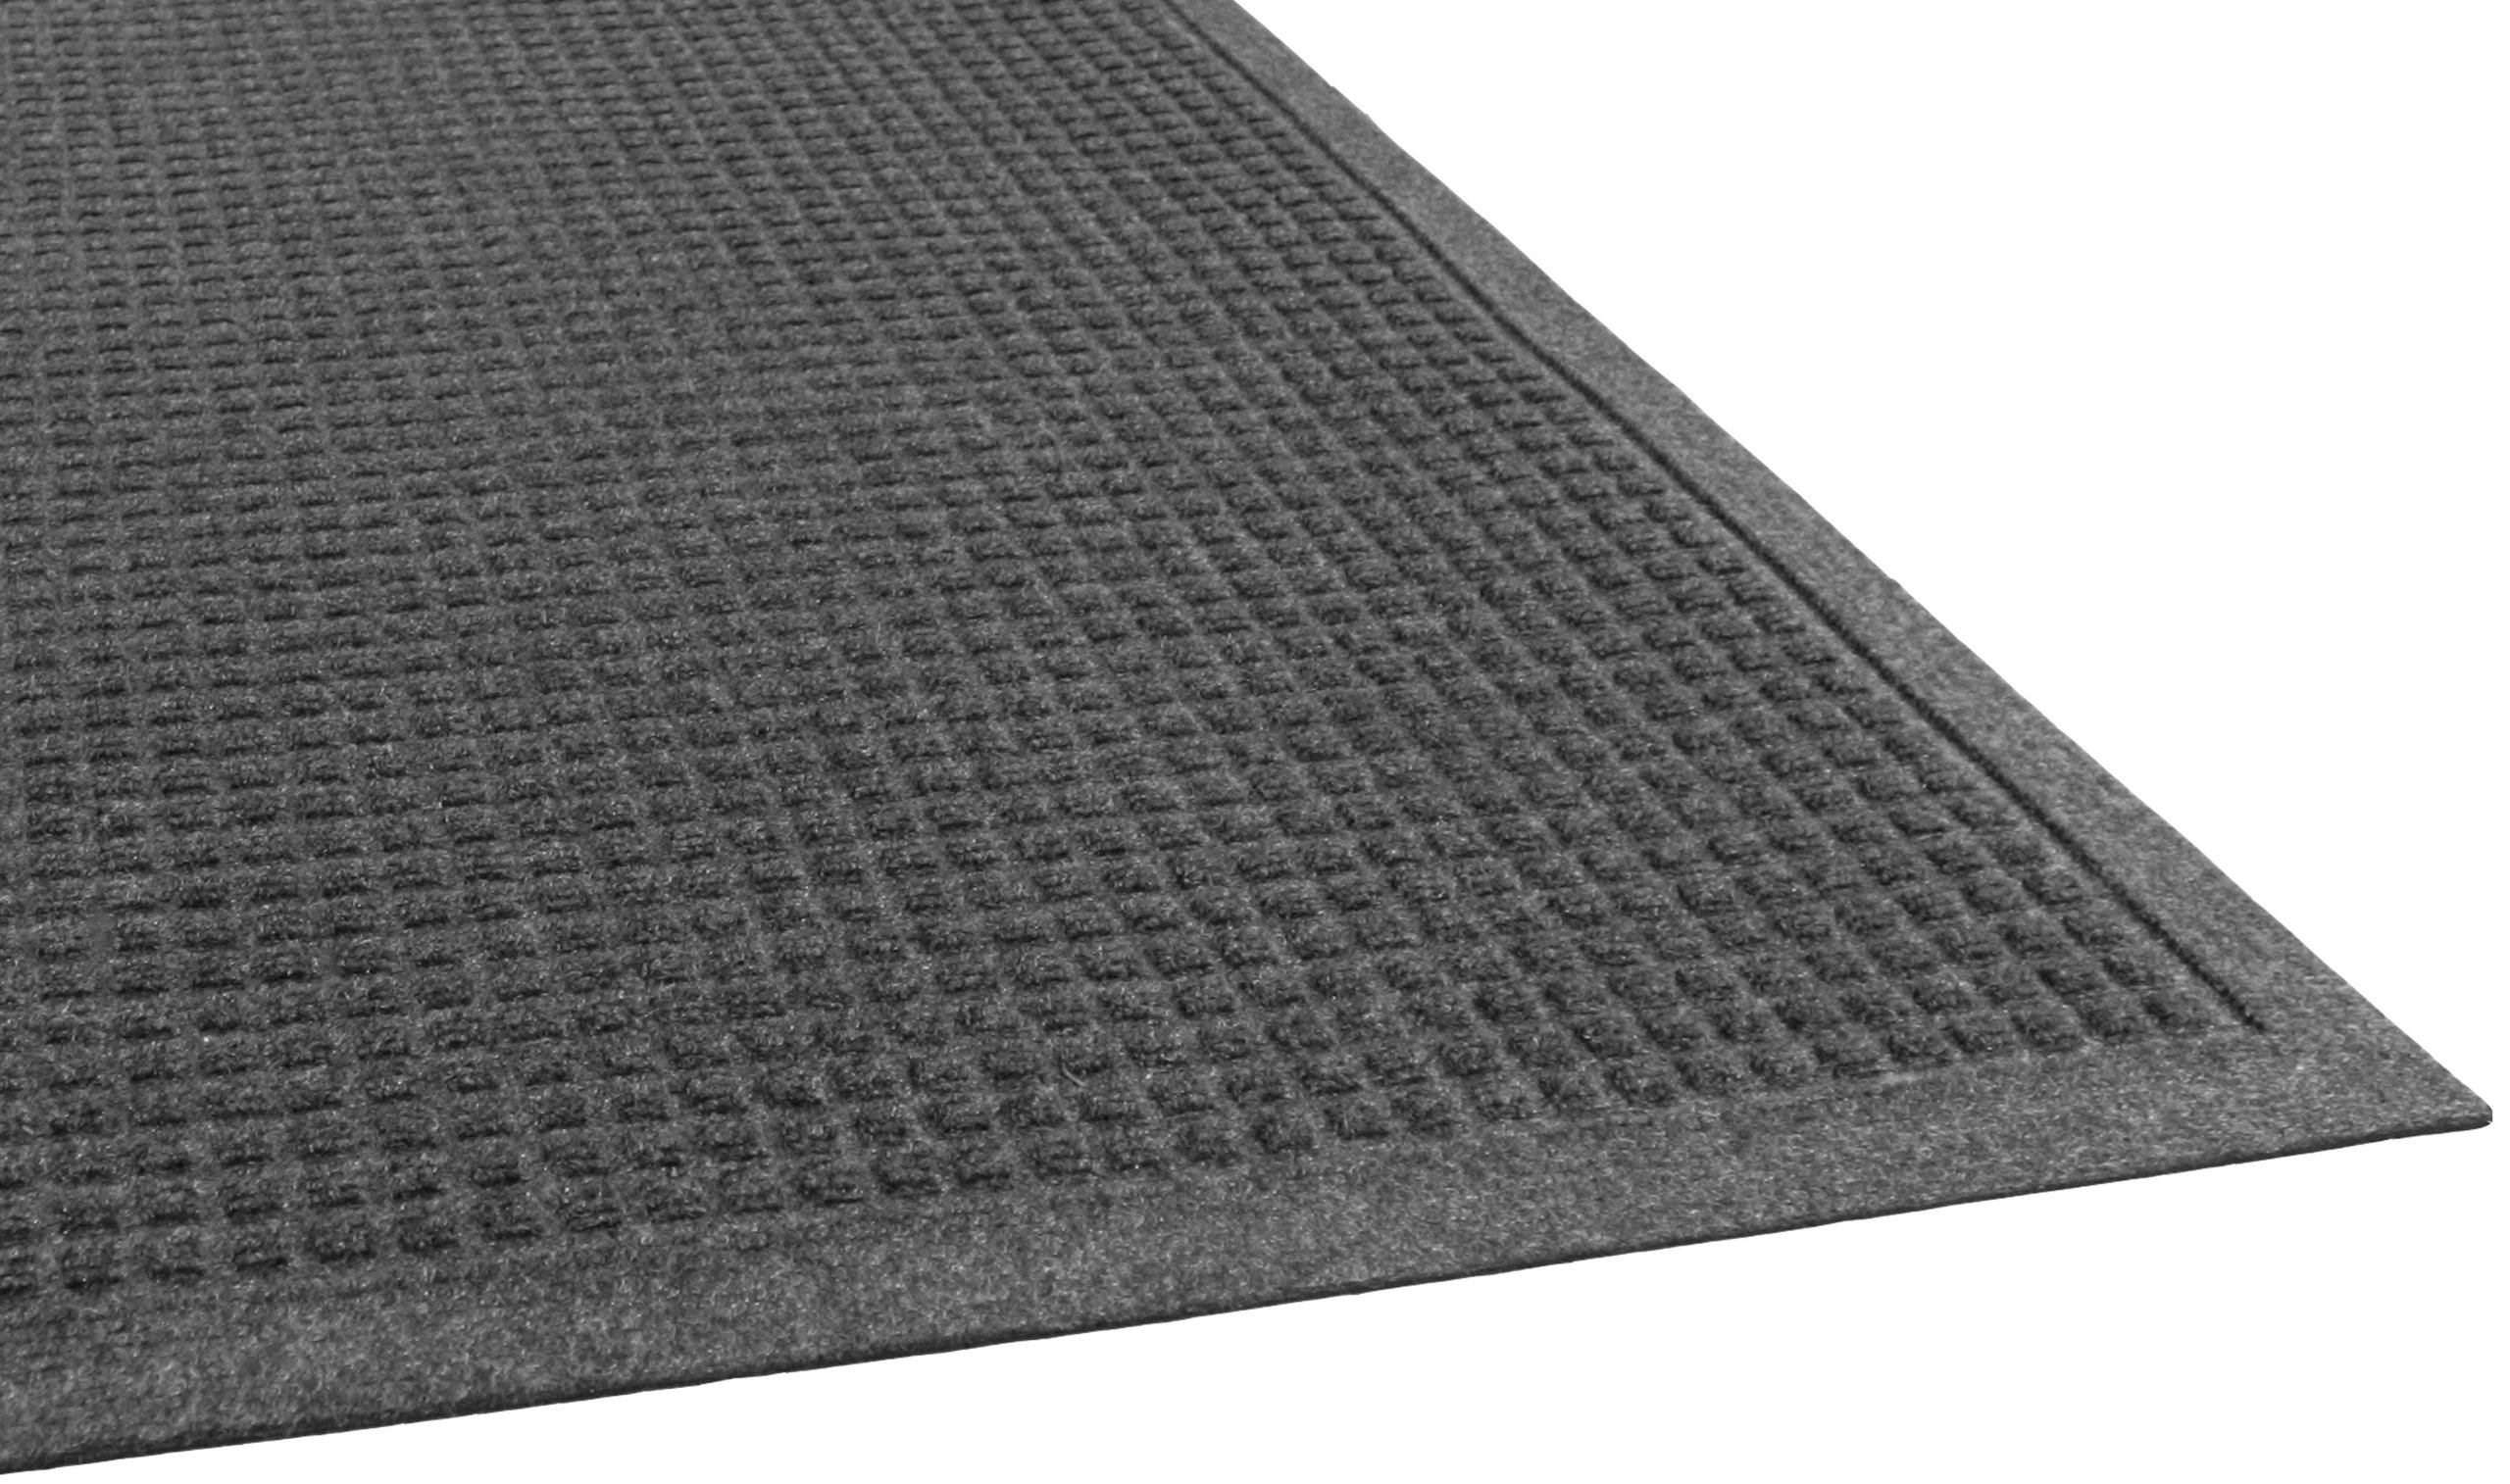 Guardian EcoGuard Indoor Wiper Floor Mat, Recycled Plastic and Rubber, 4' x 10', Charcoal by Guardian